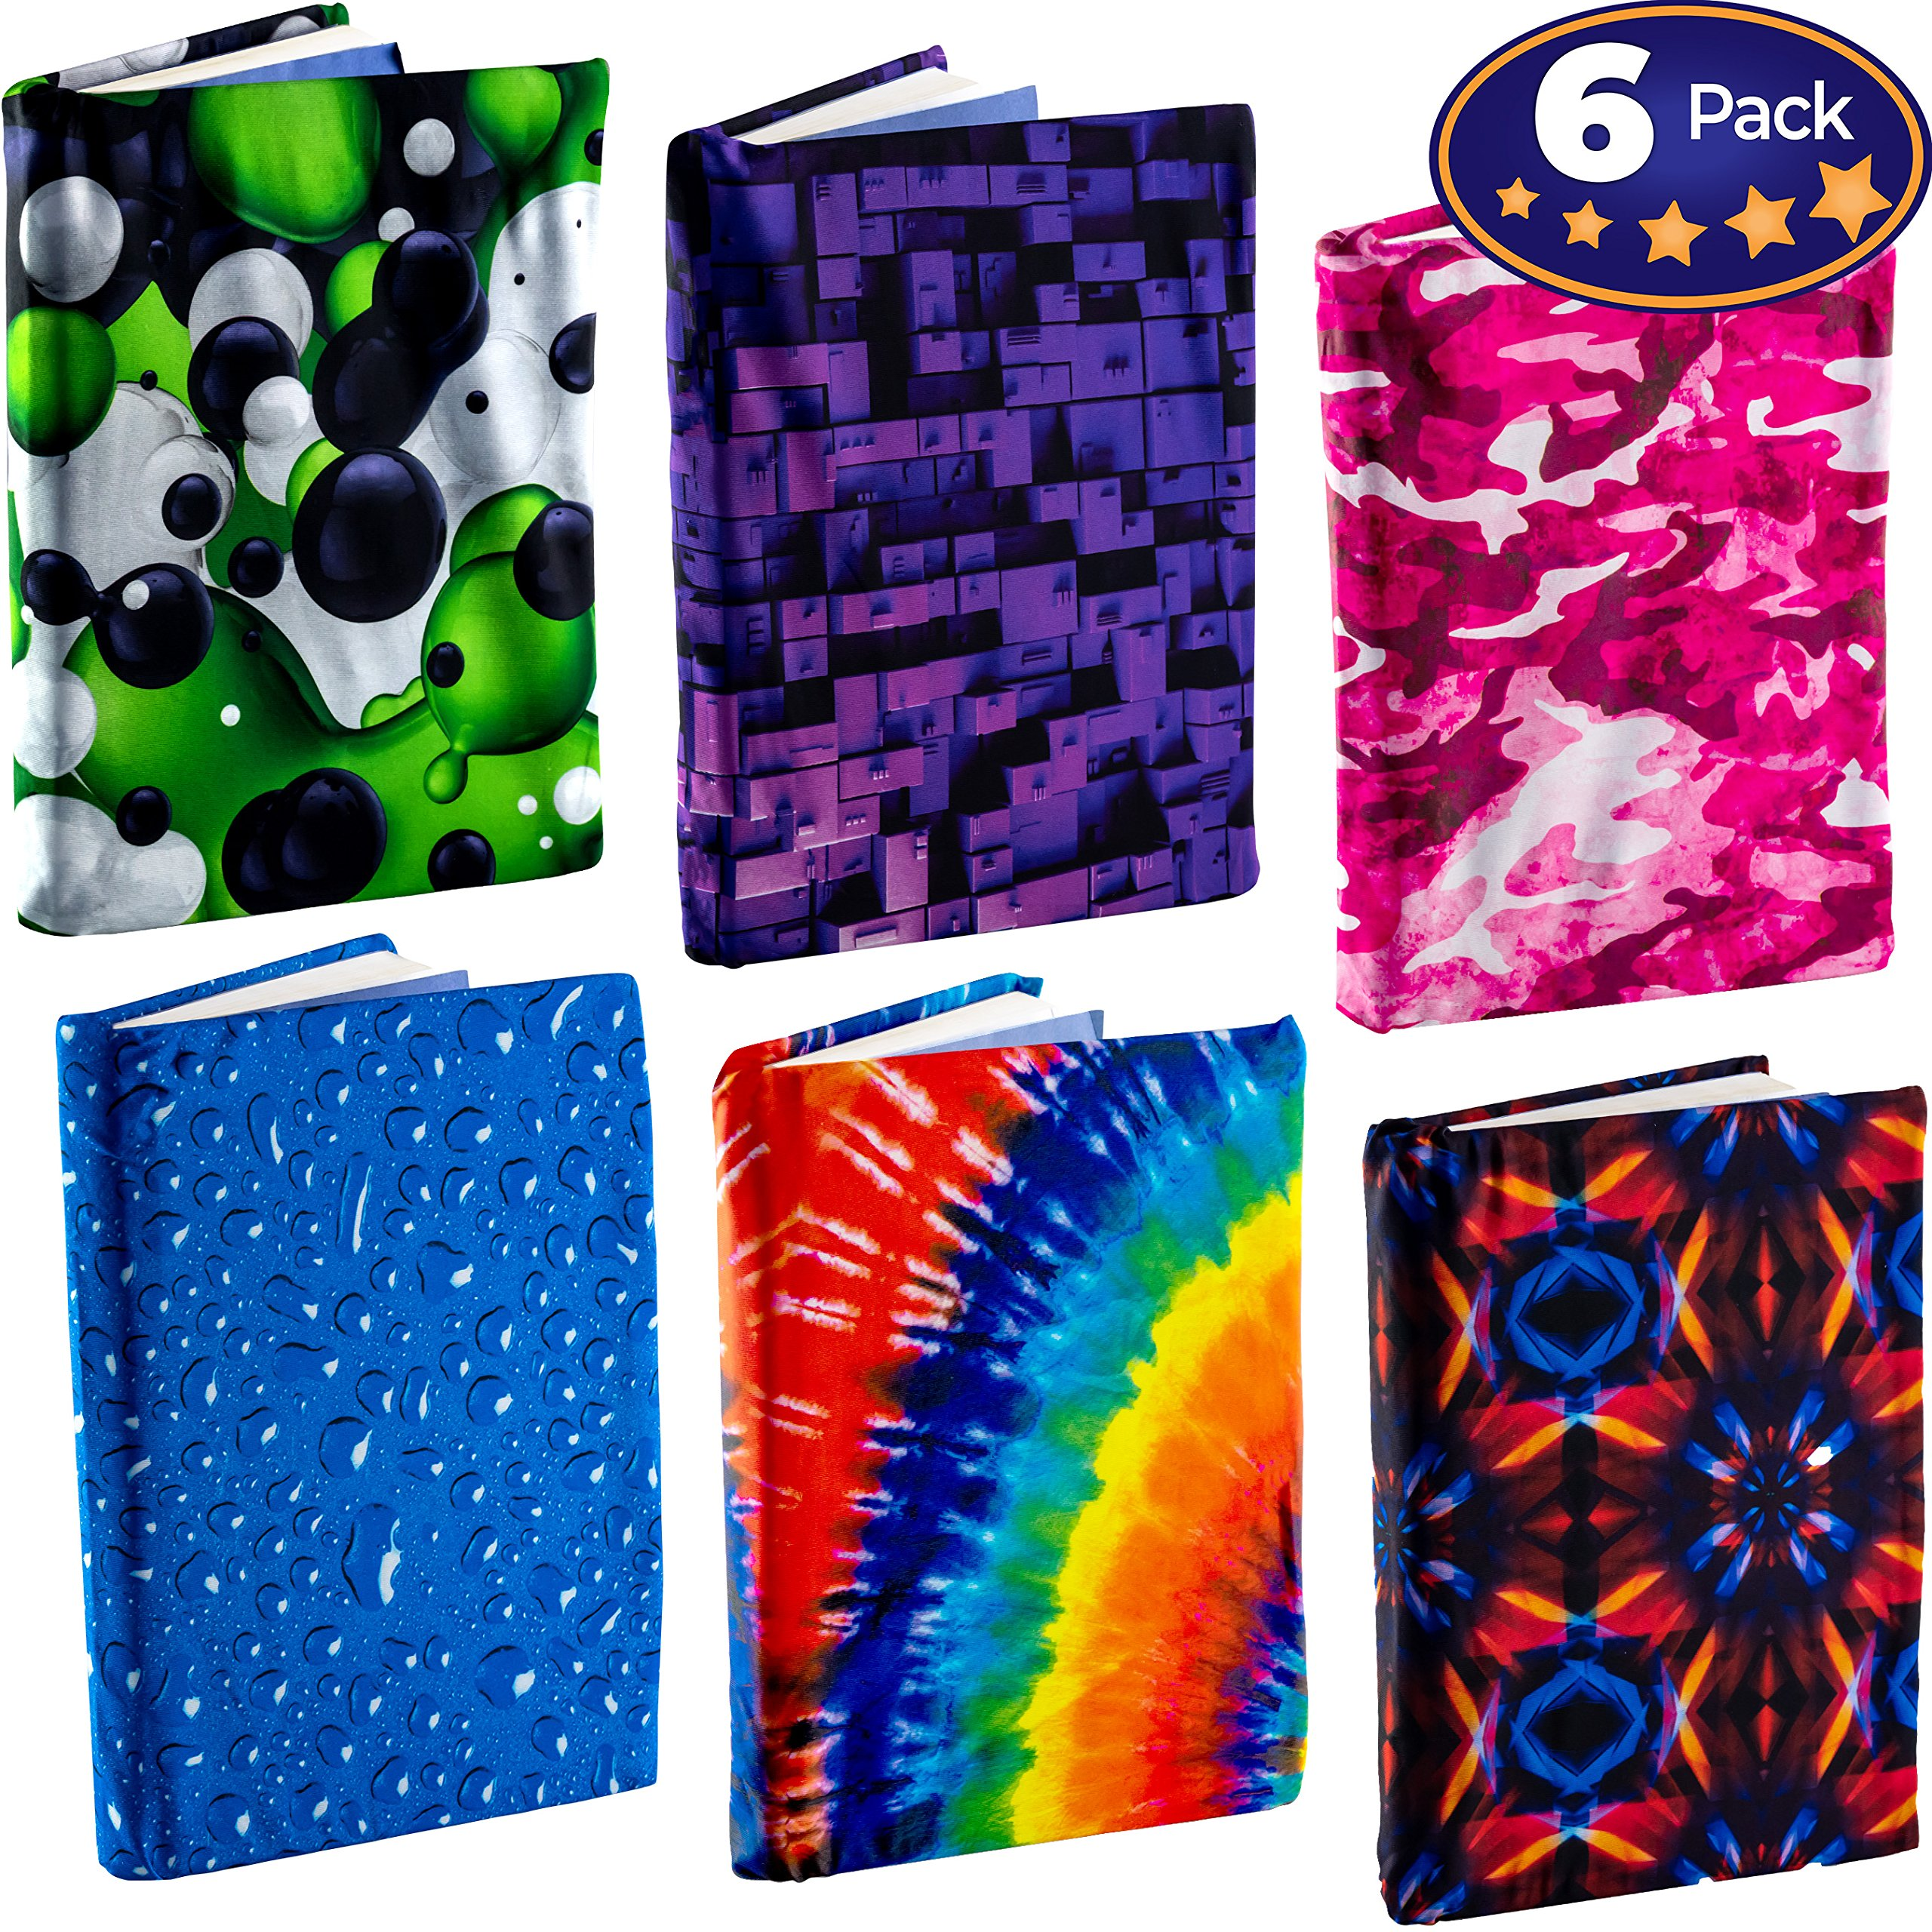 Jumbo, Stretchable Book Cover 6 Design Pack. Fits Most Hardcover Textbooks Up to 9'' x 11''. Our Adhesive-Free, Nylon Fabric Protector Set is A Needed School Supply for Students. Washable and Reusable